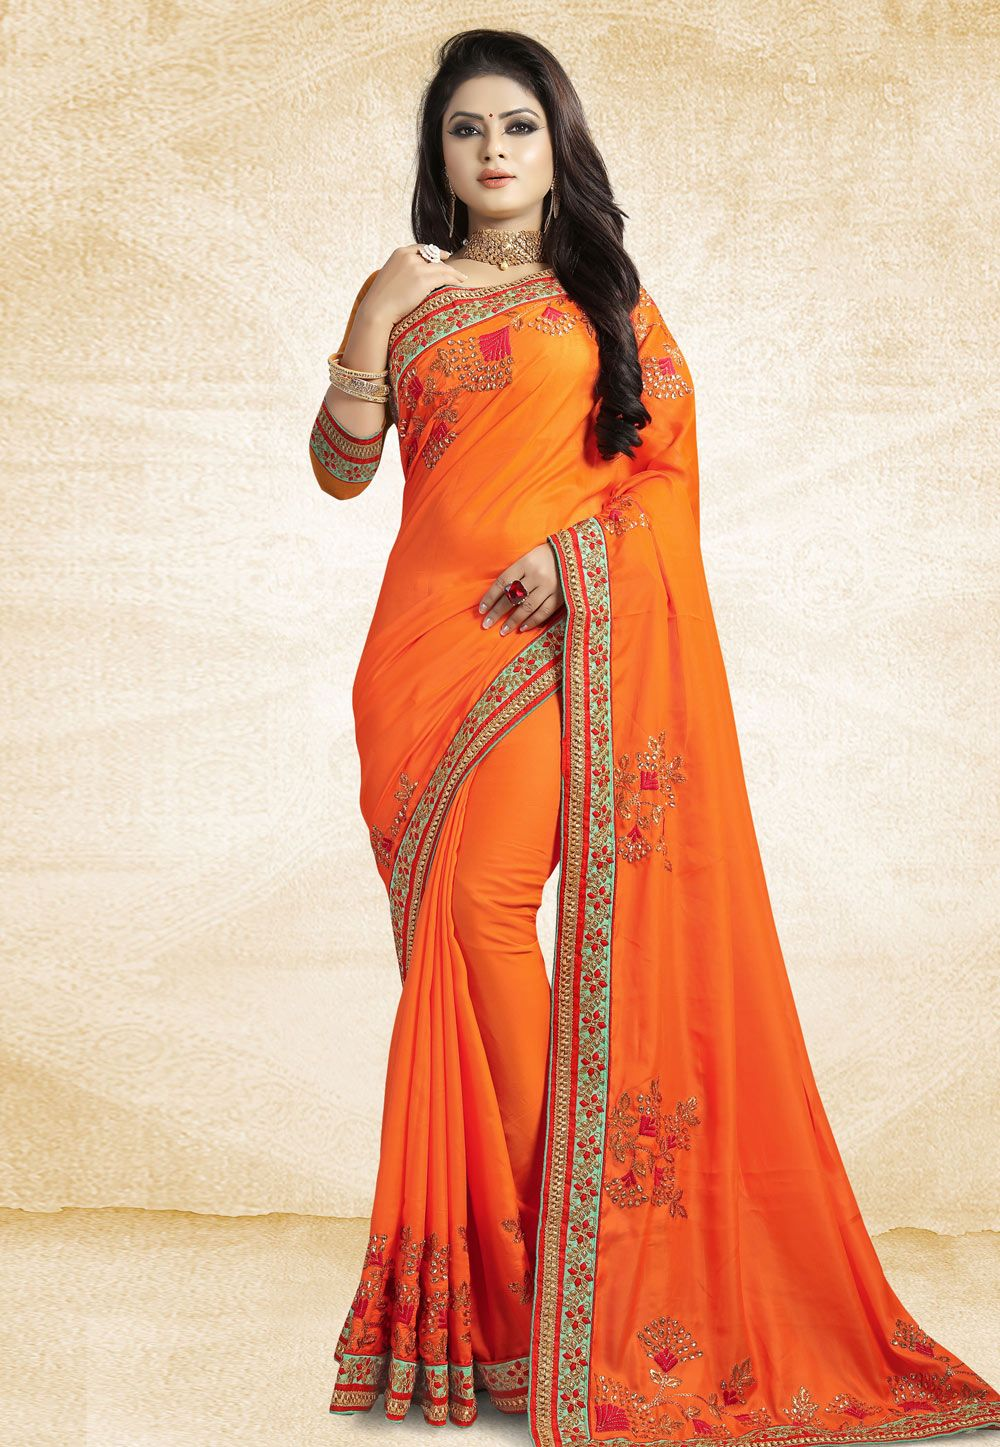 af51e01df4 Buy Orange Satin Embroidered Festival Wear Saree 162367 with blouse online  at lowest price from vast collection of sarees at Indianclothstore.com.